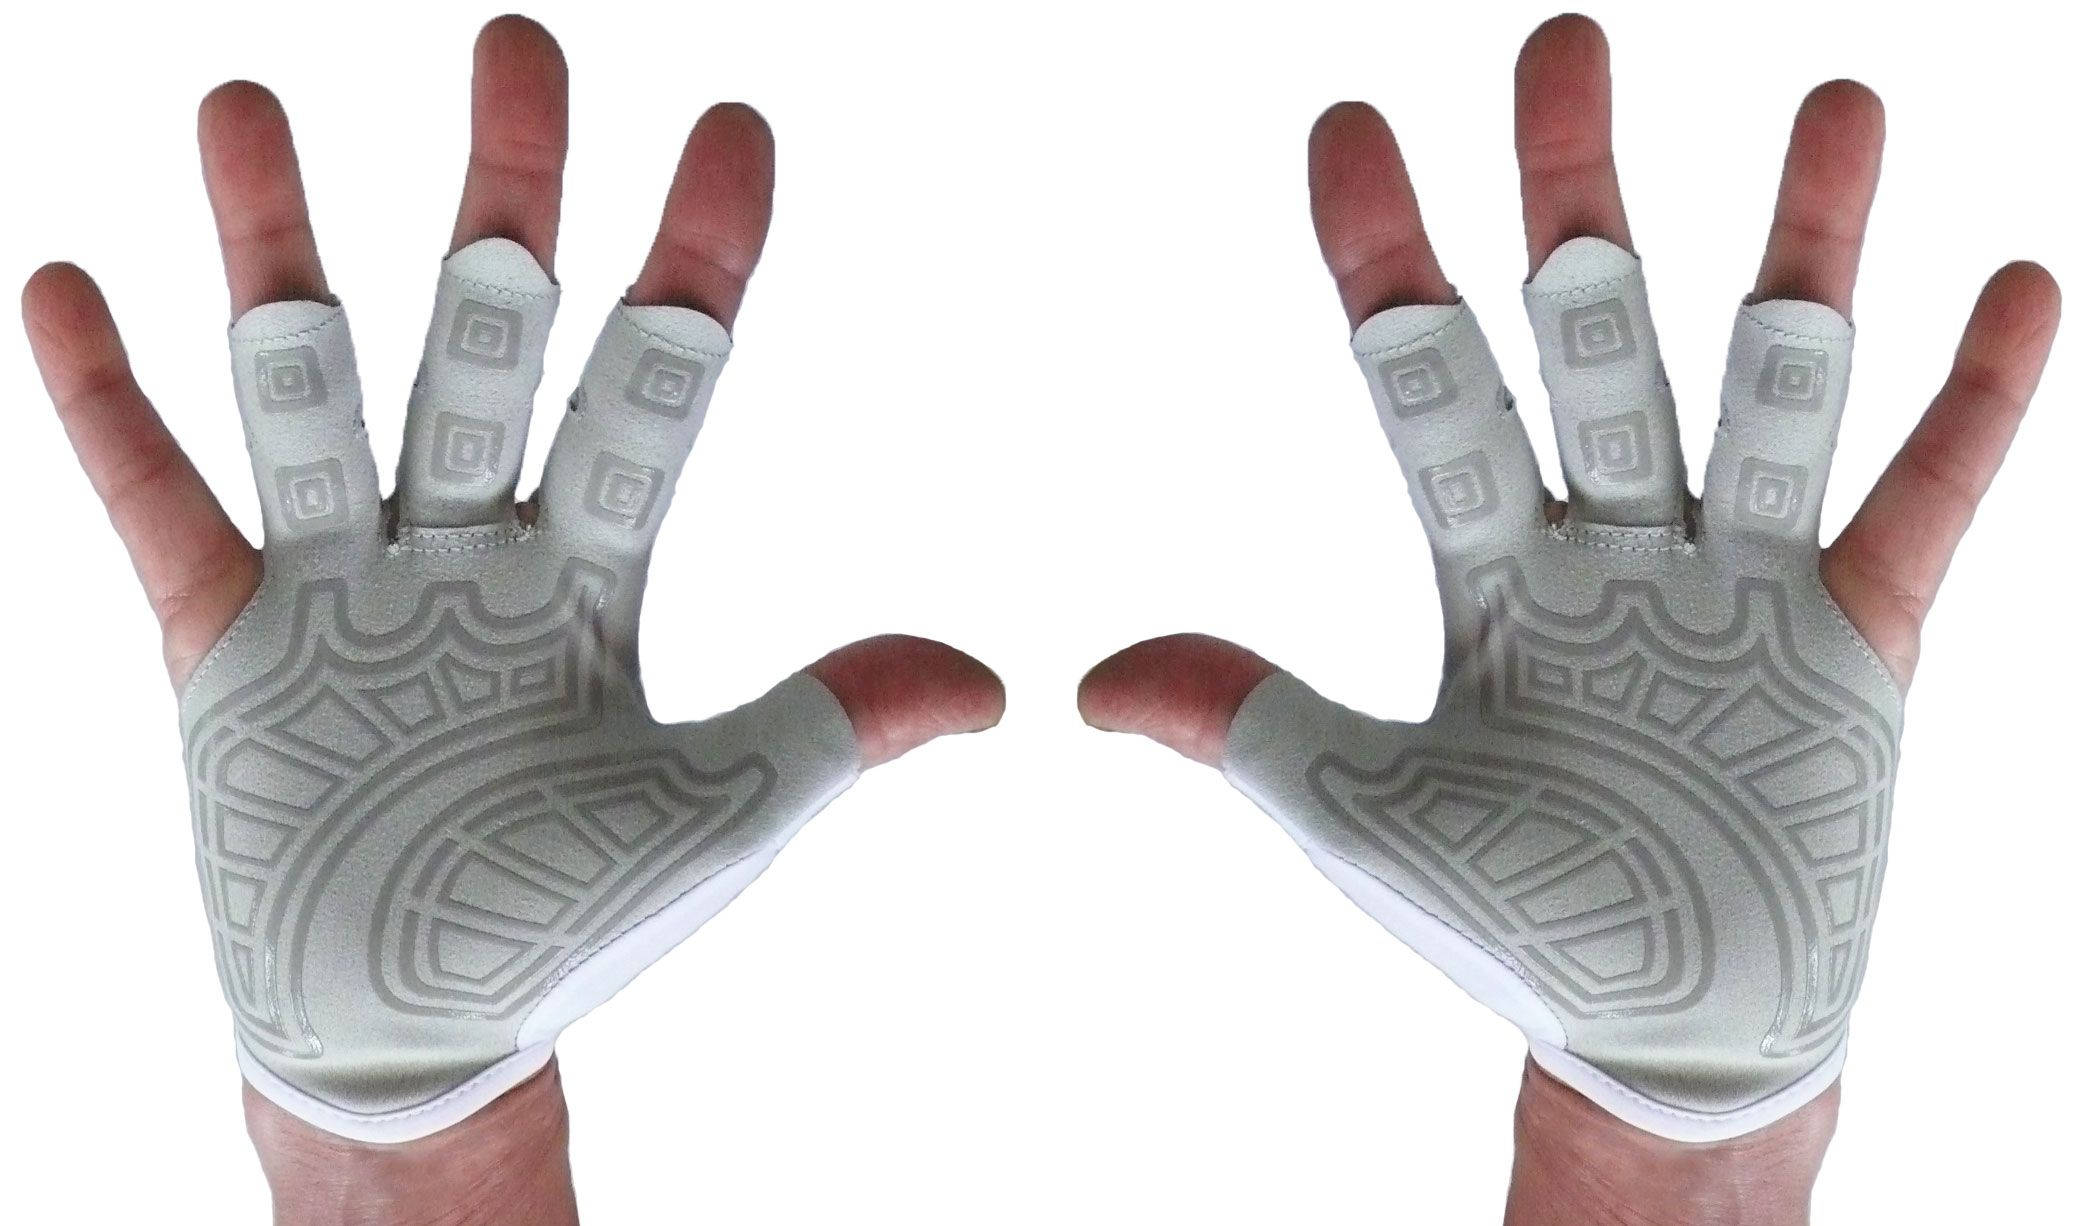 The Crew Stop Gloves Lightweight & durable Protect hands ...